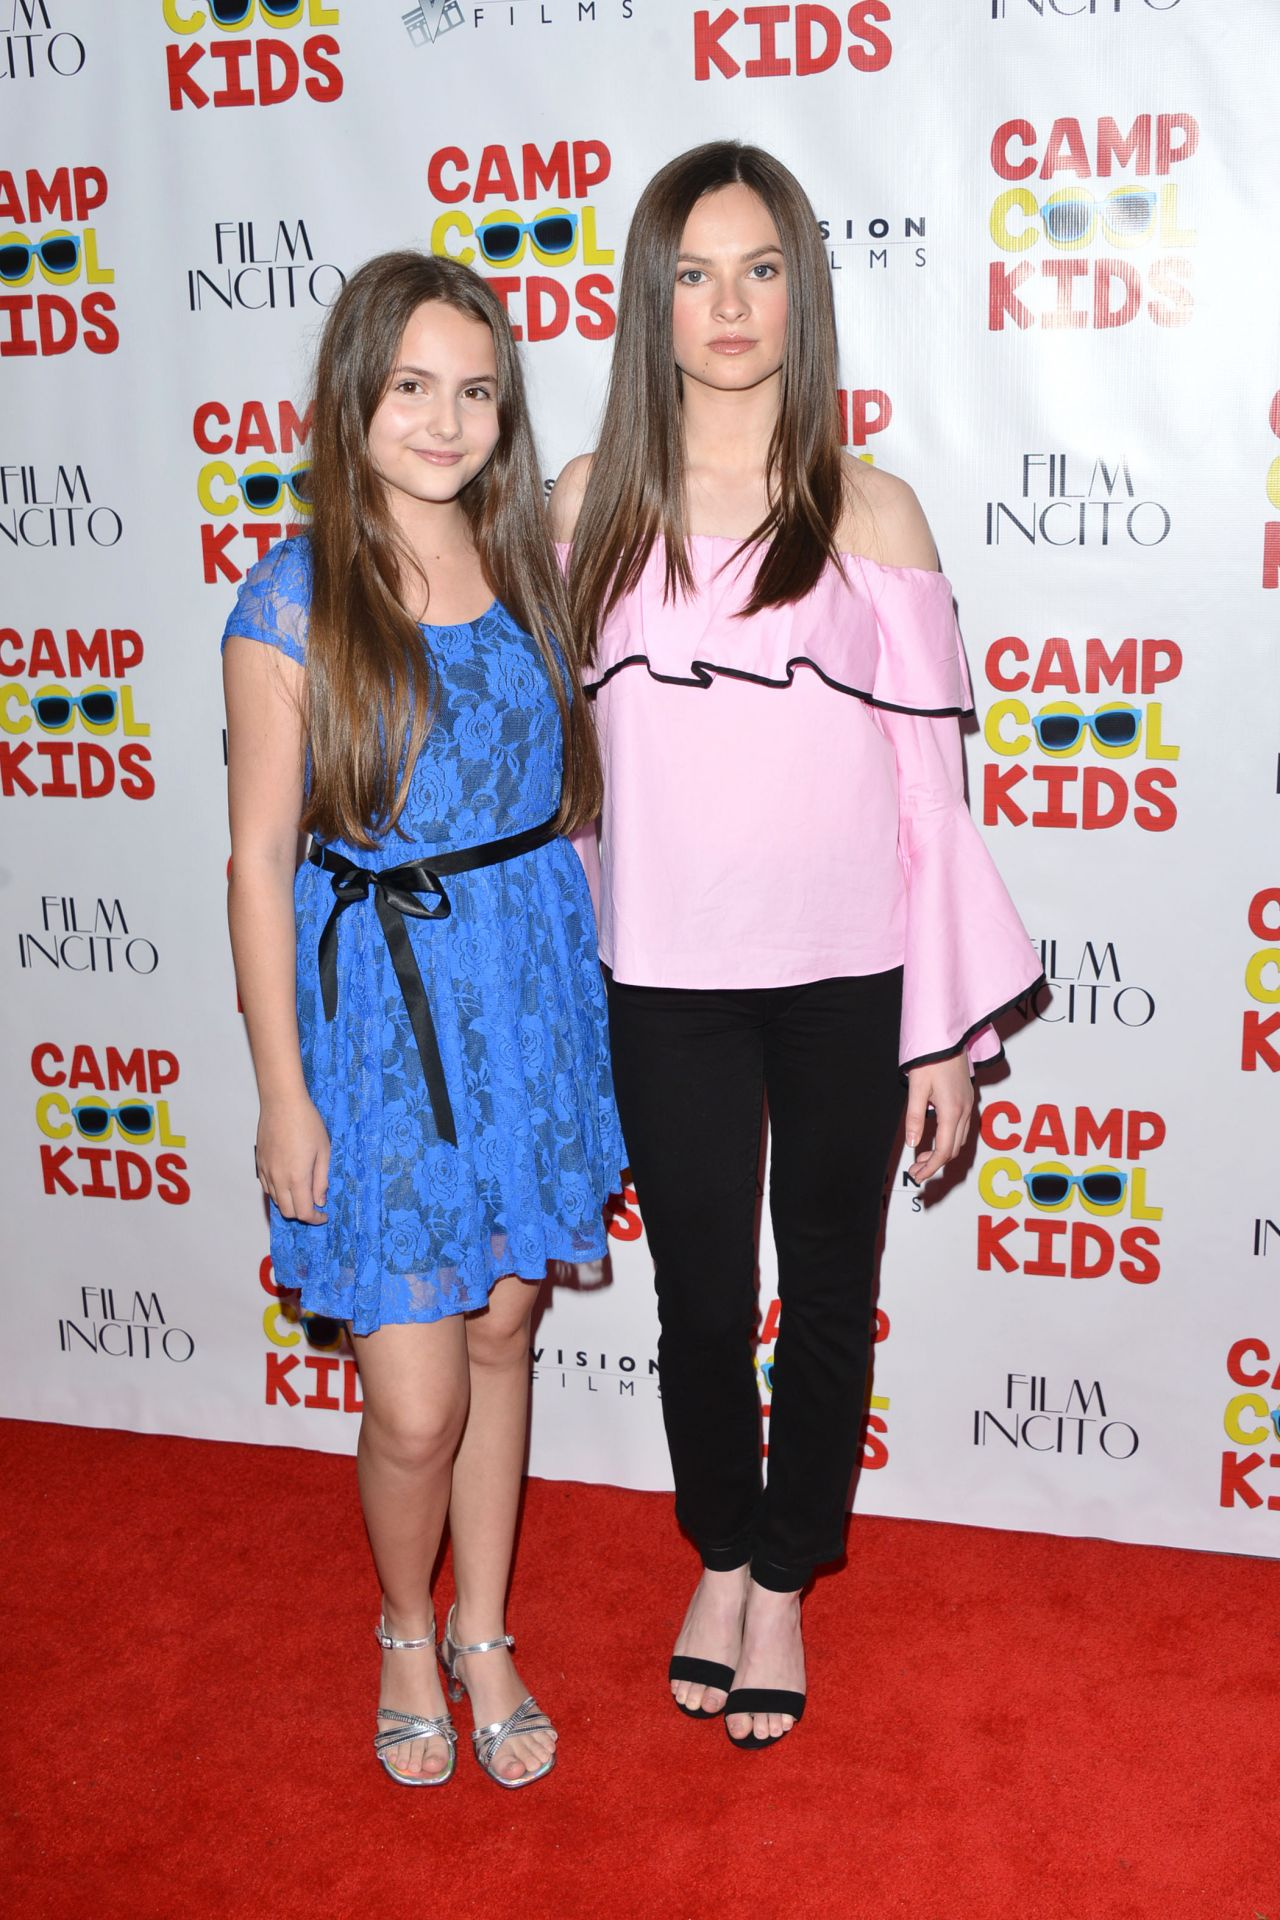 Abigail duhon camp cool kids premiere in universal city - 2019 year